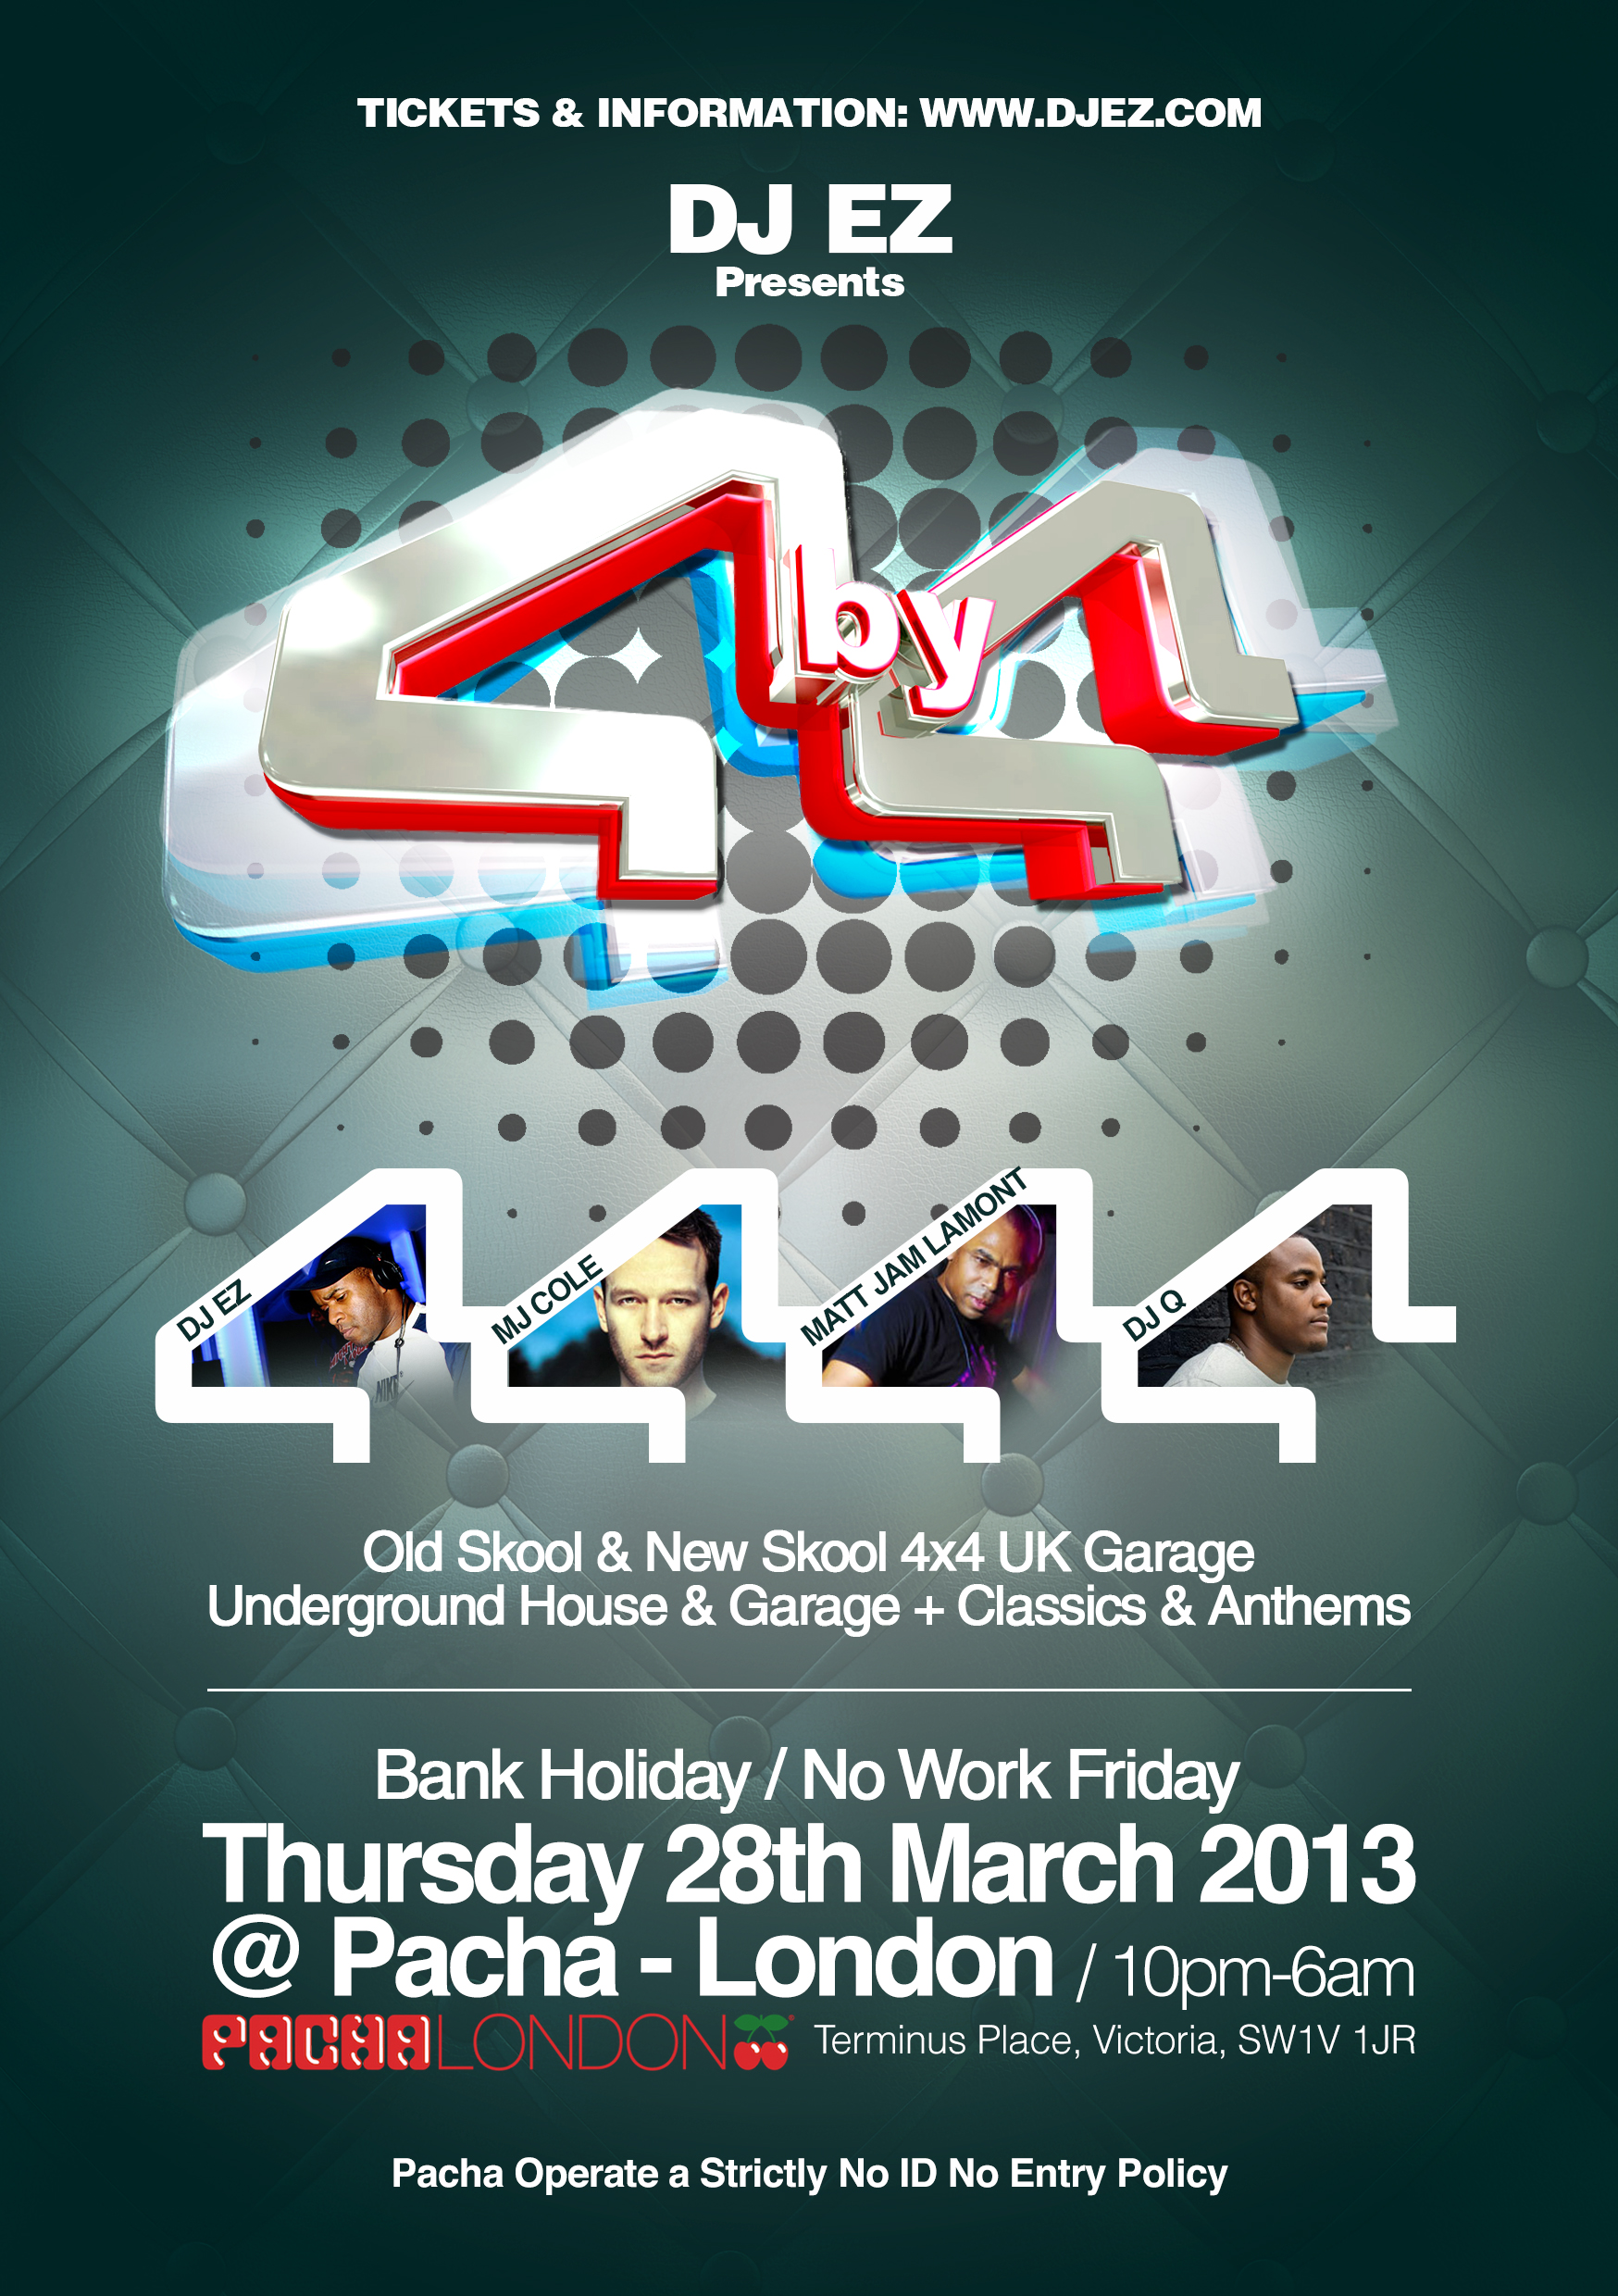 4by4 - Thurs 28th March 2013 (Front Of Flyer)